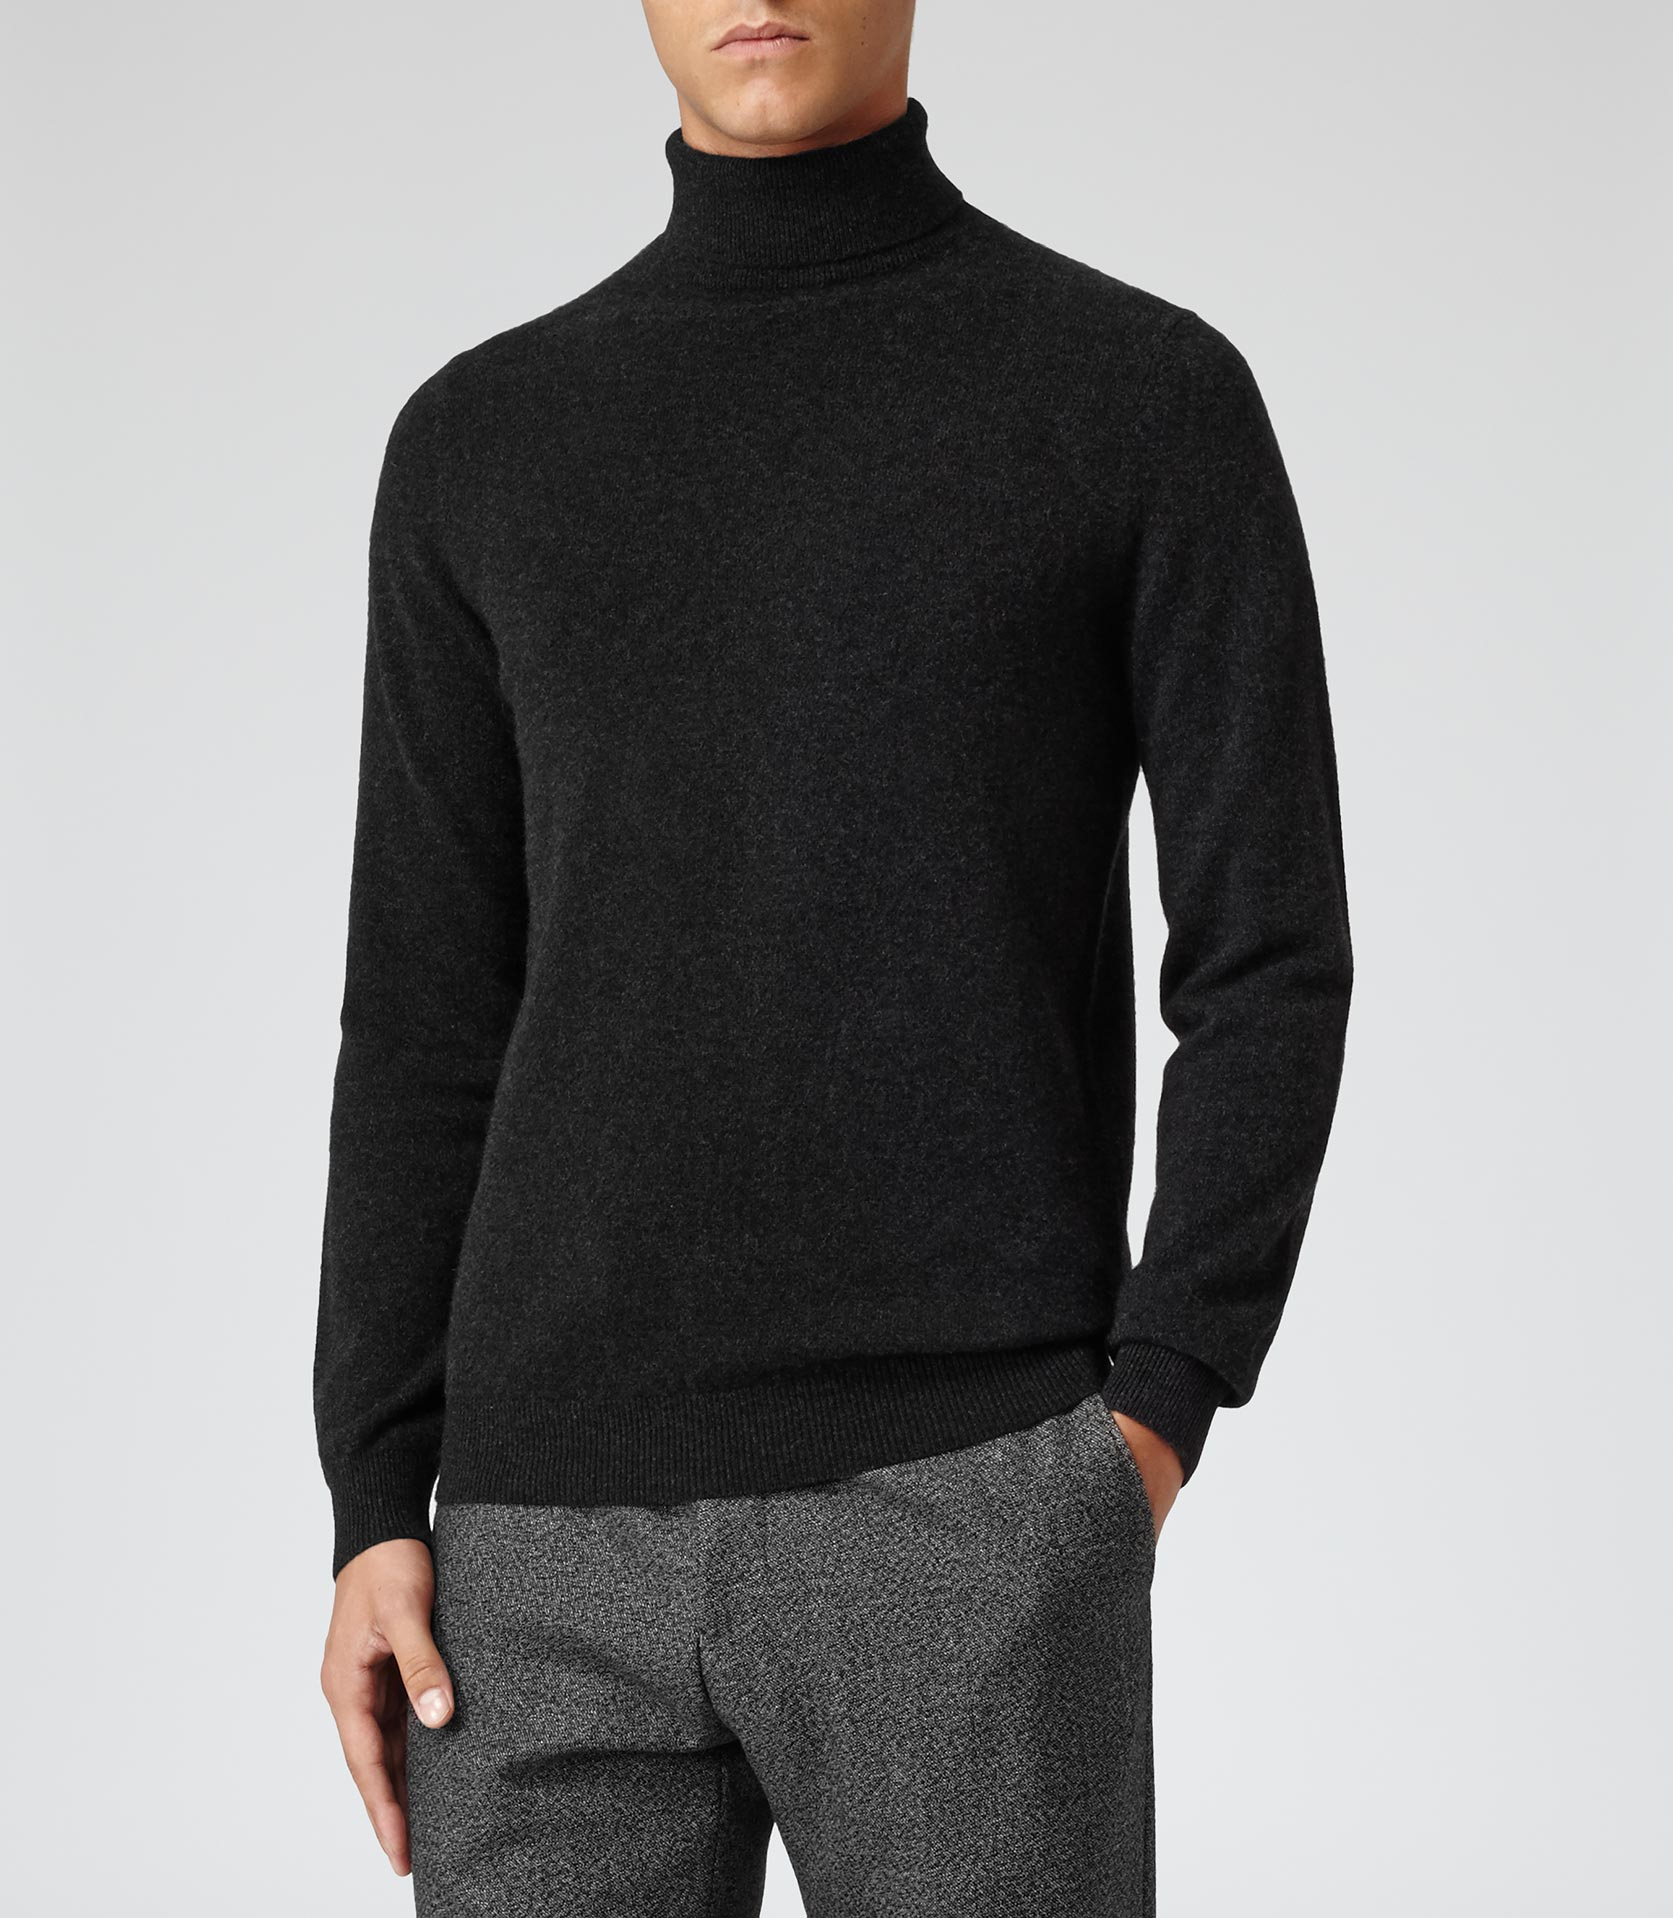 54755c246a5 Reiss Gray Swan Cashmere Roll Neck Jumper for men